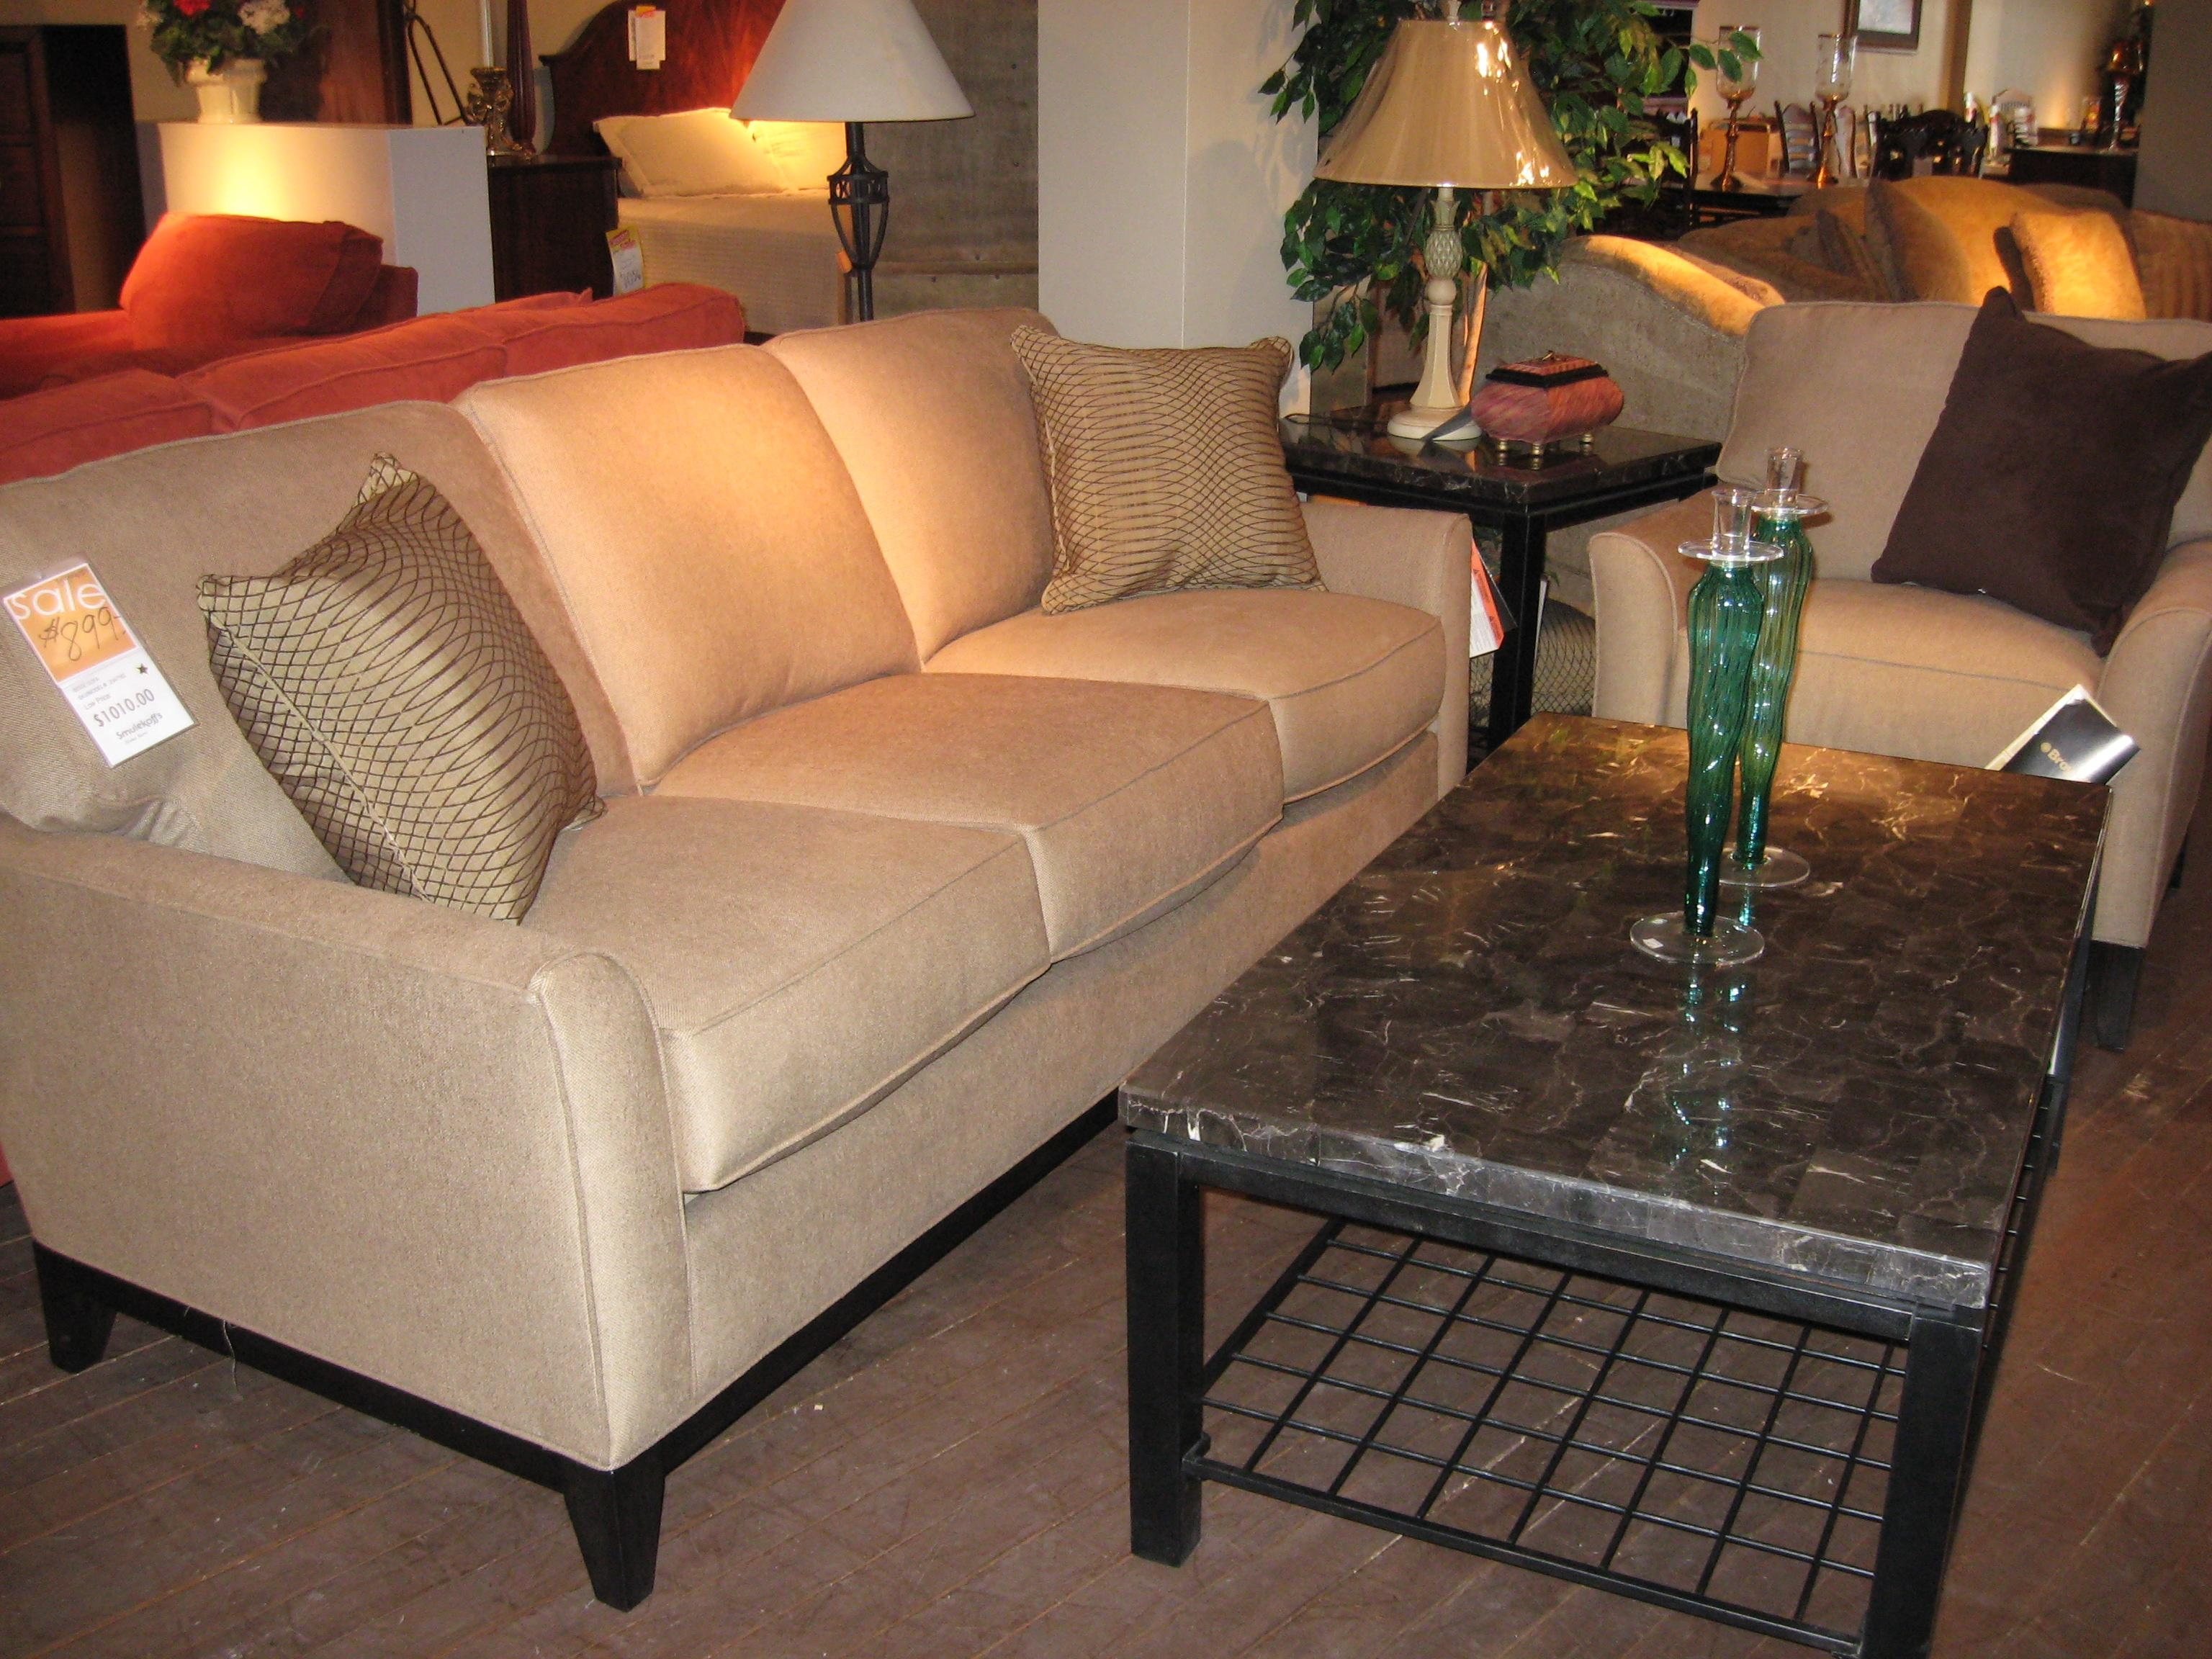 Broyhill – Smulekoff's Home Store Throughout Broyhill Perspectives Sofas (Image 4 of 20)